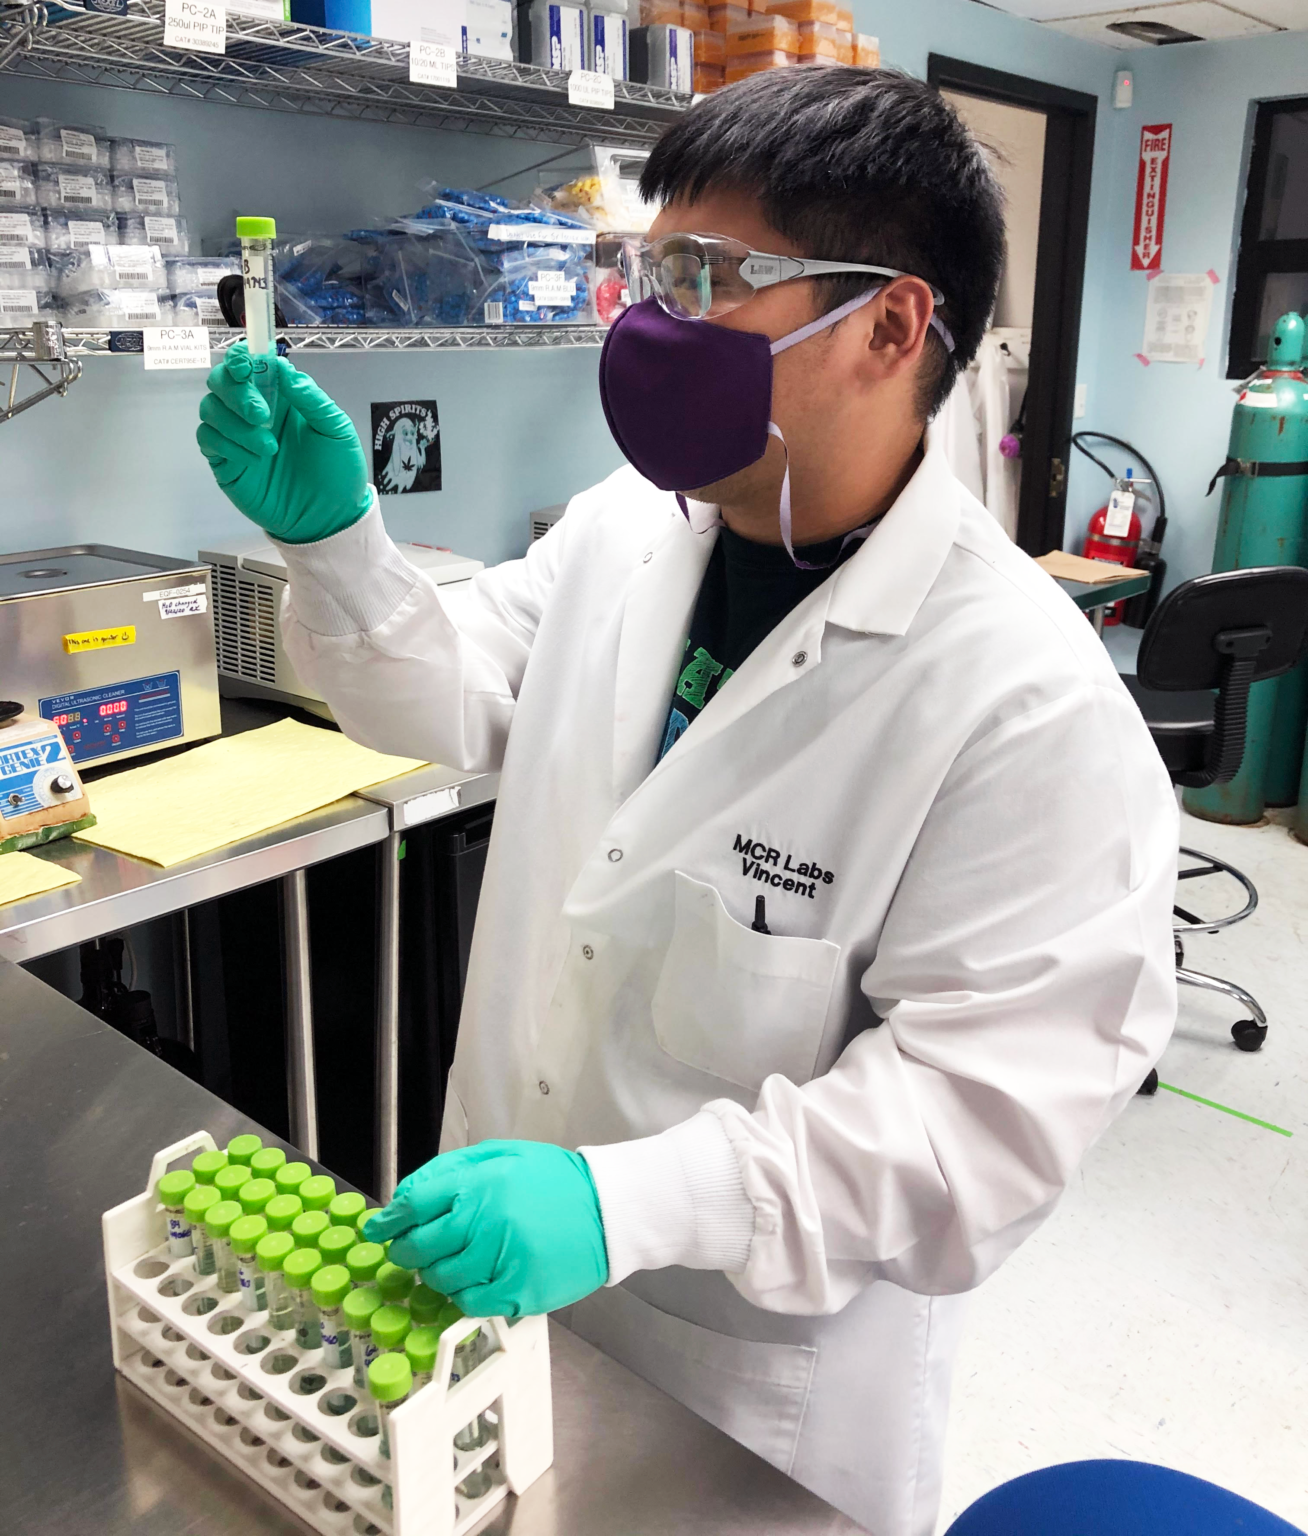 Vince Barcinas prepping samples in the lab.